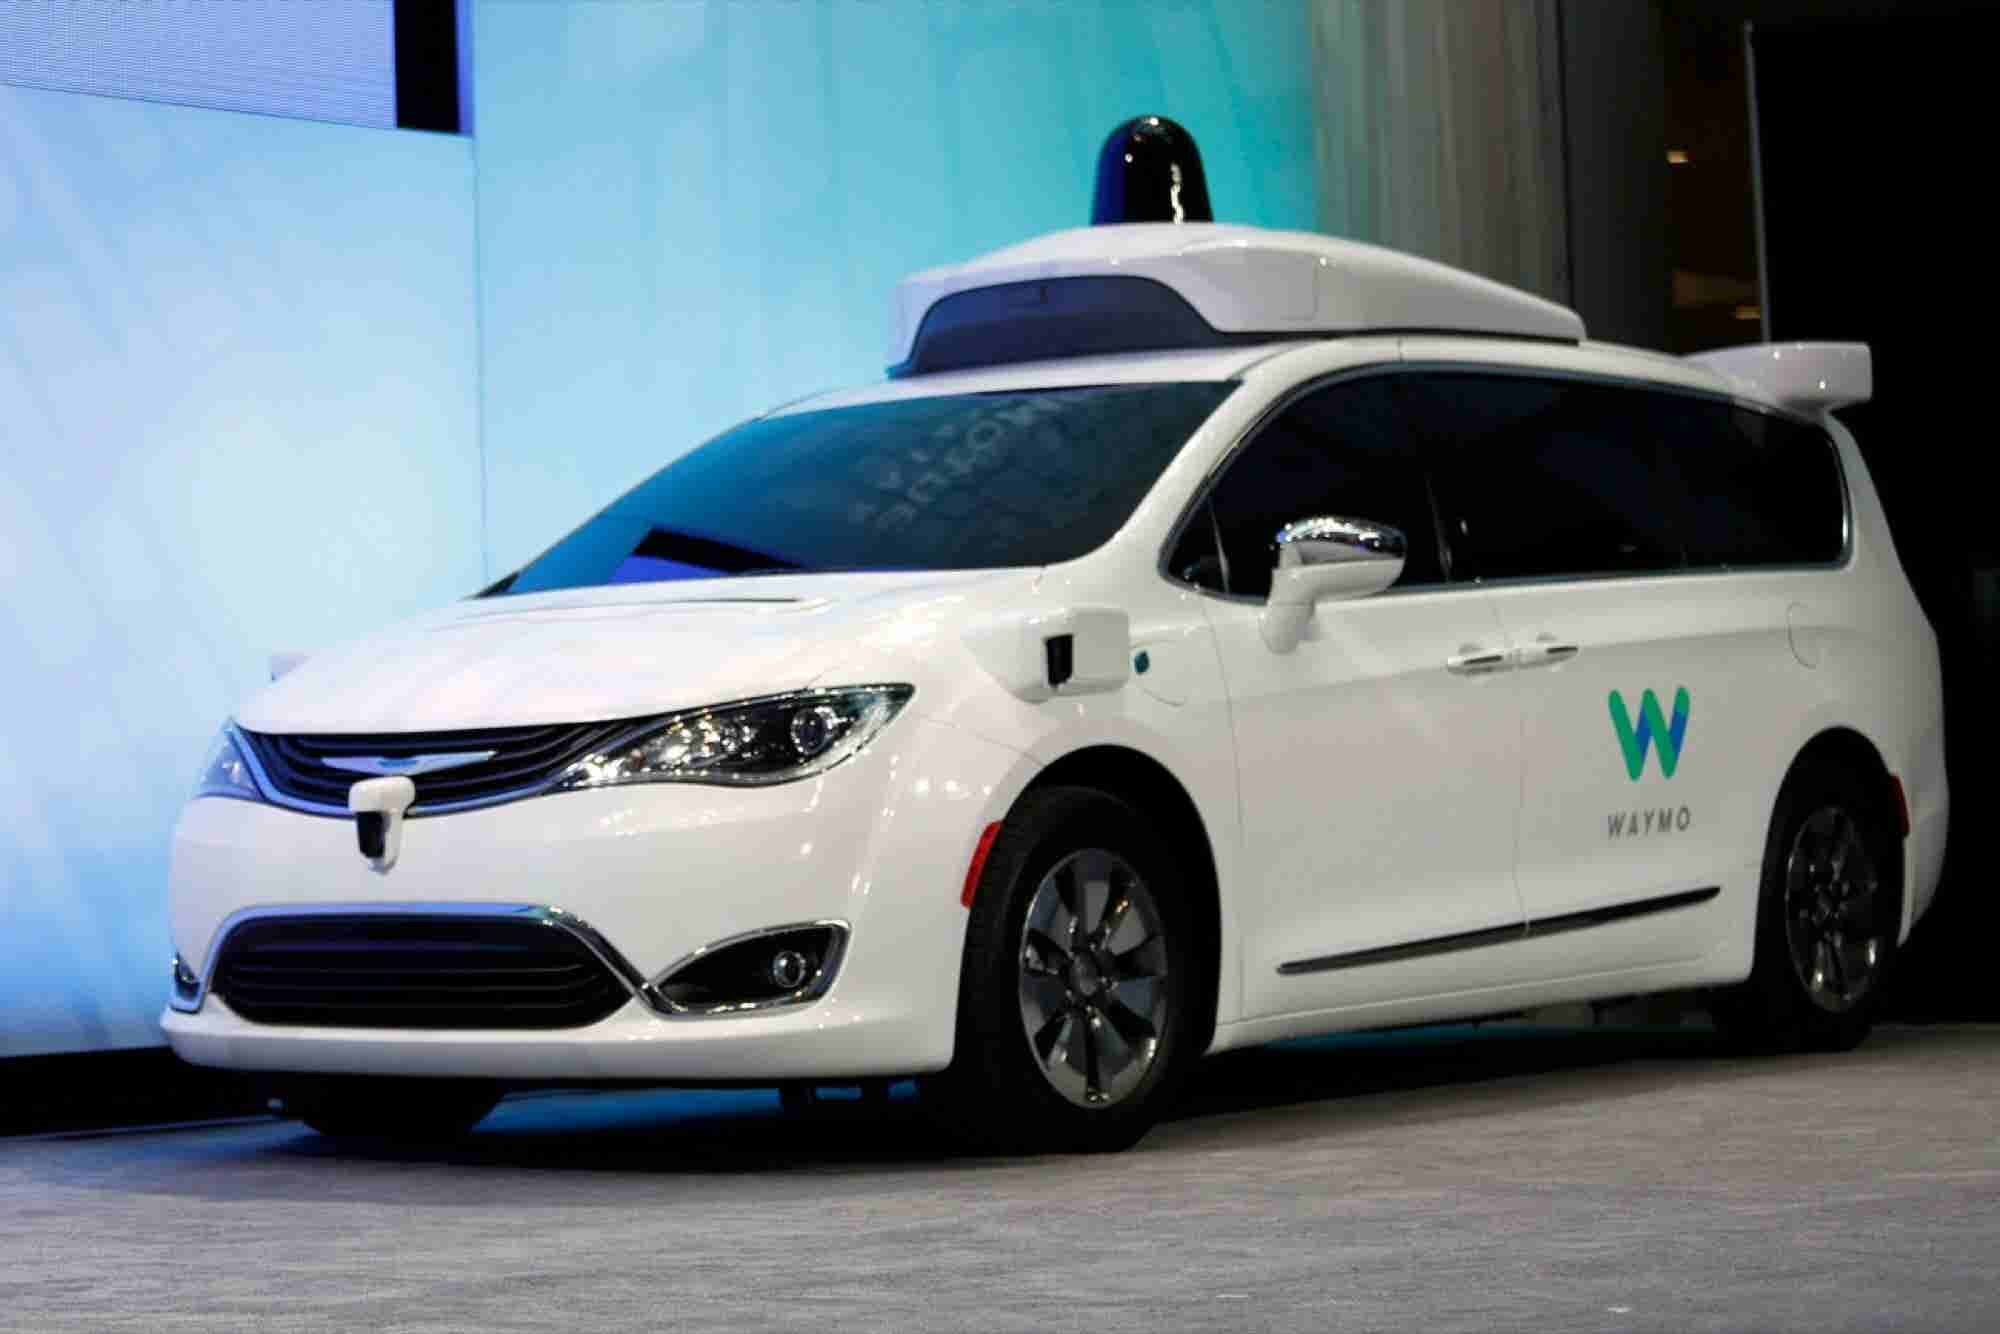 4 Reasons Why the Uber-Waymo Lawsuit Is a Huge Wake Up Call for the $3.5-Trillion Tech Industry